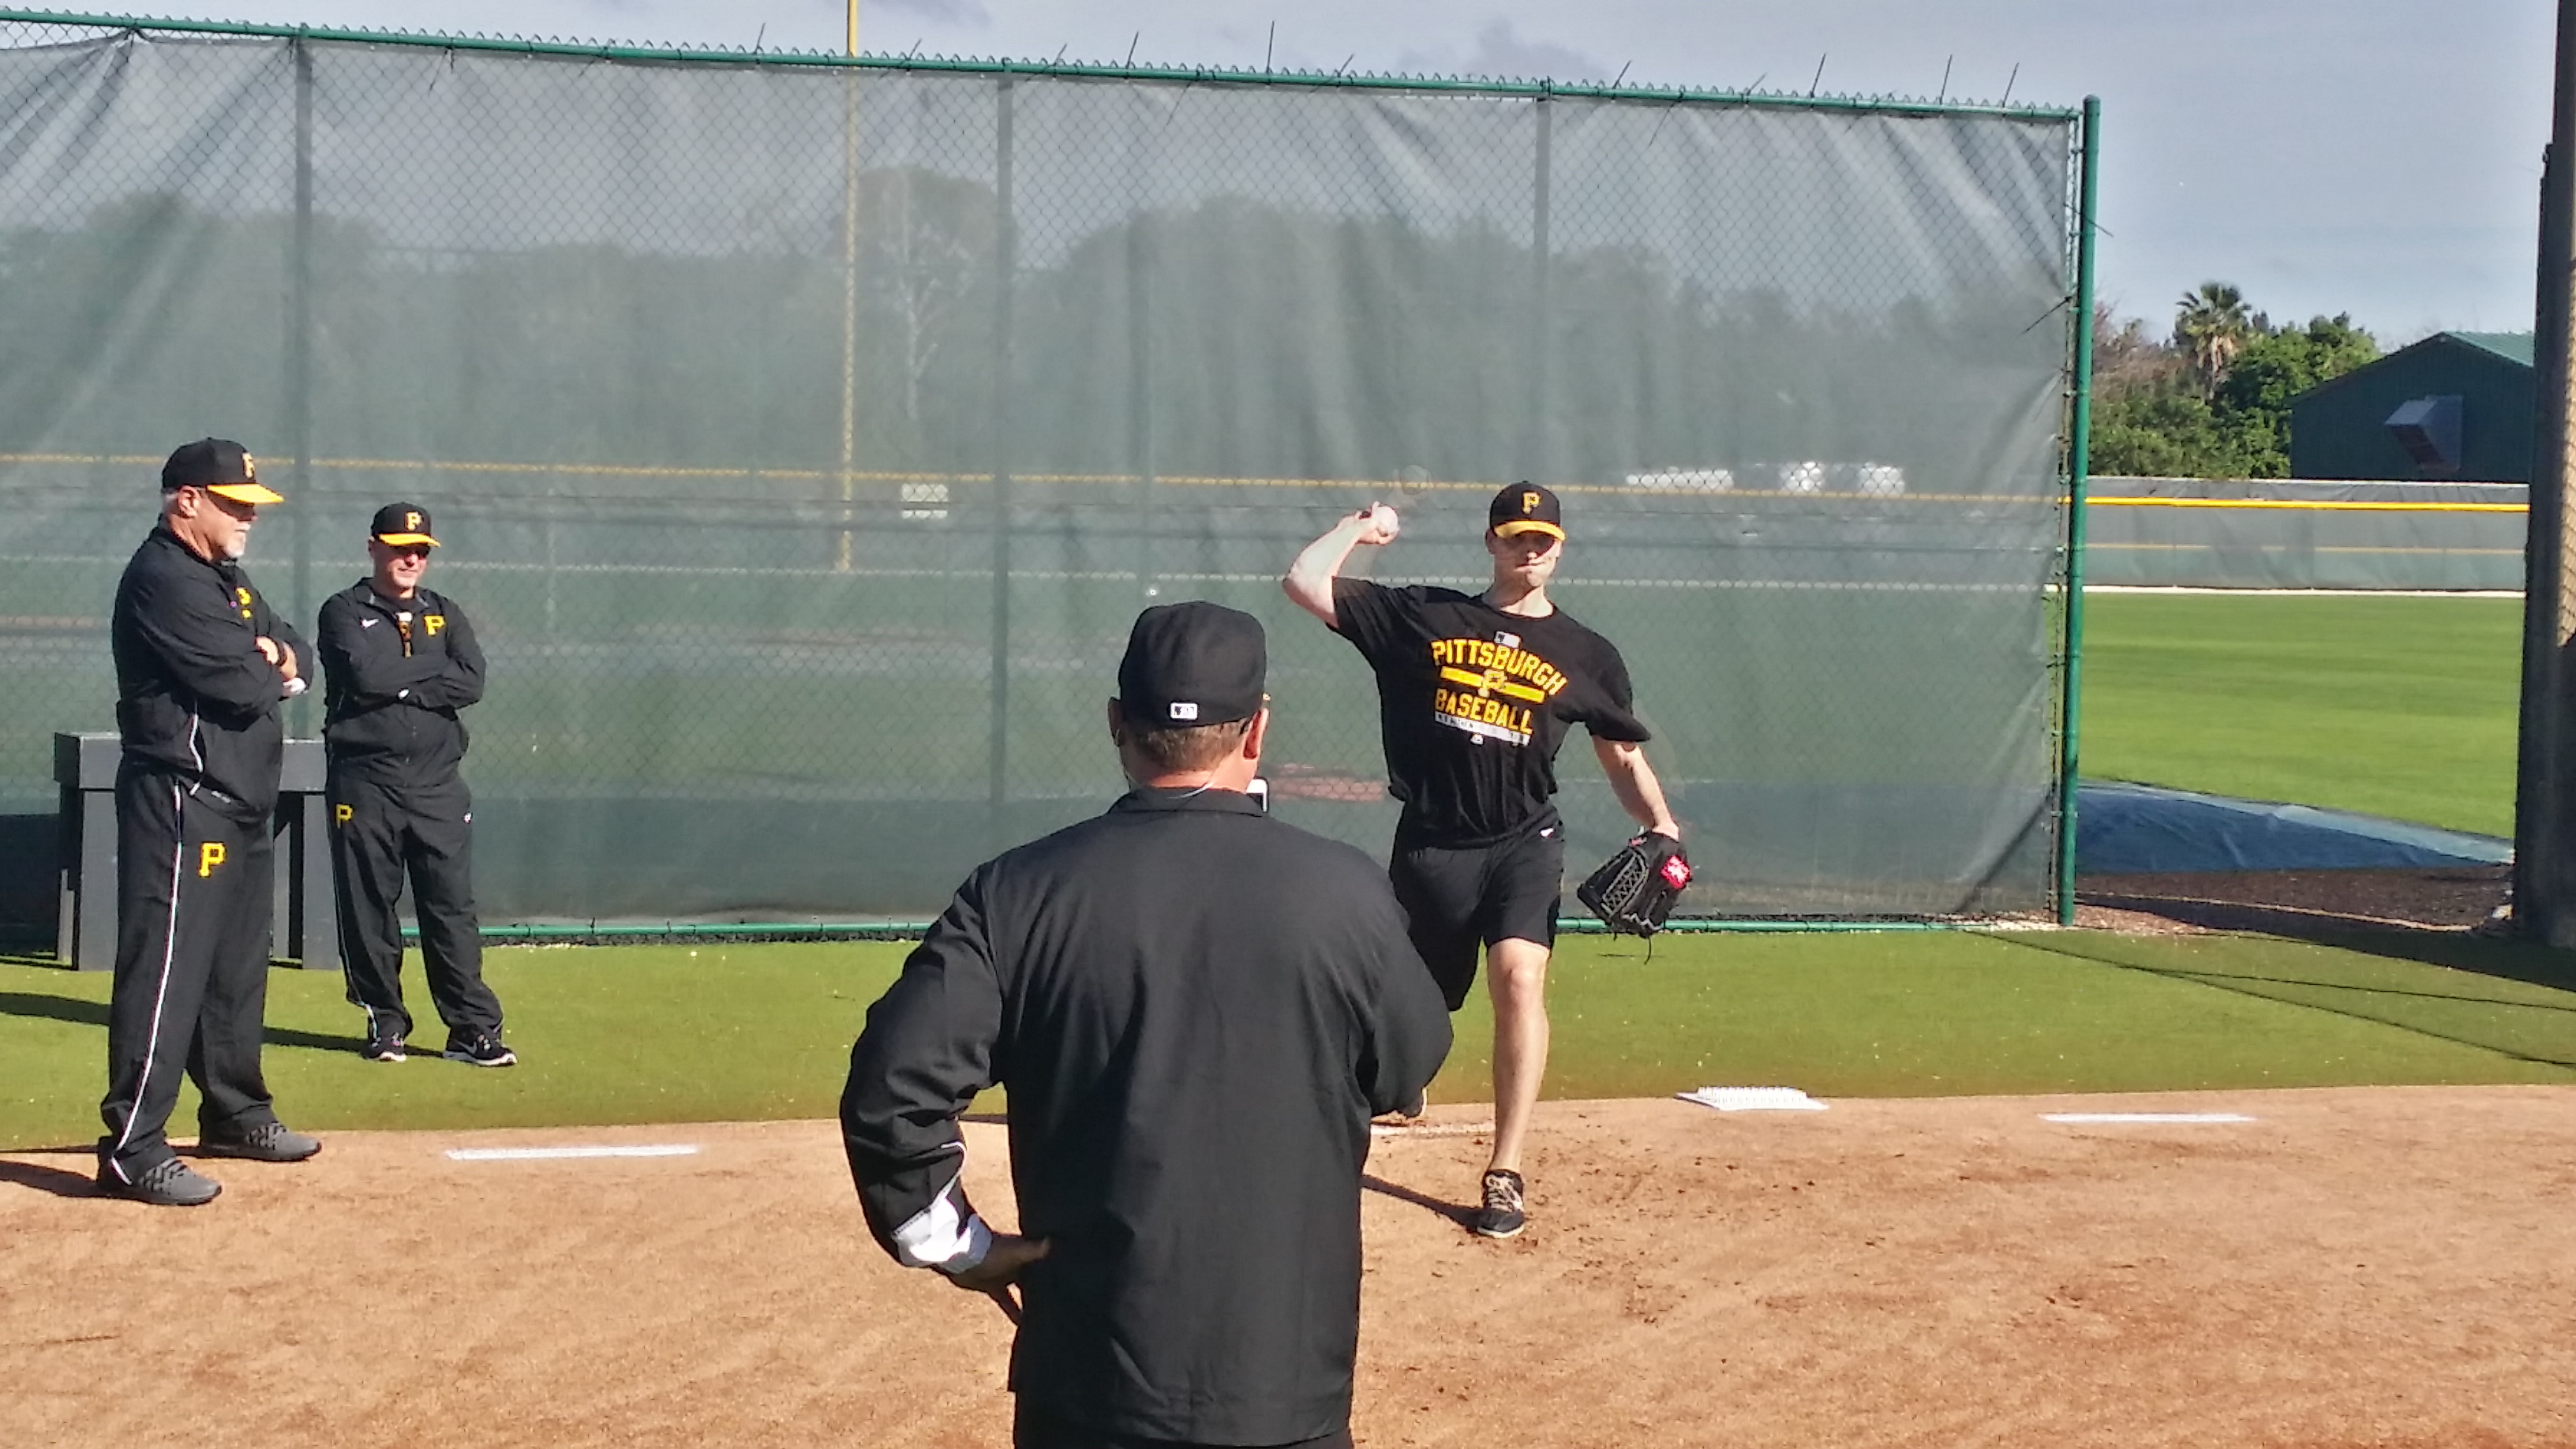 Charlie Morton throwing off the mound in front of Ray Searage, Jim Benedict, and Euclides Rojas.